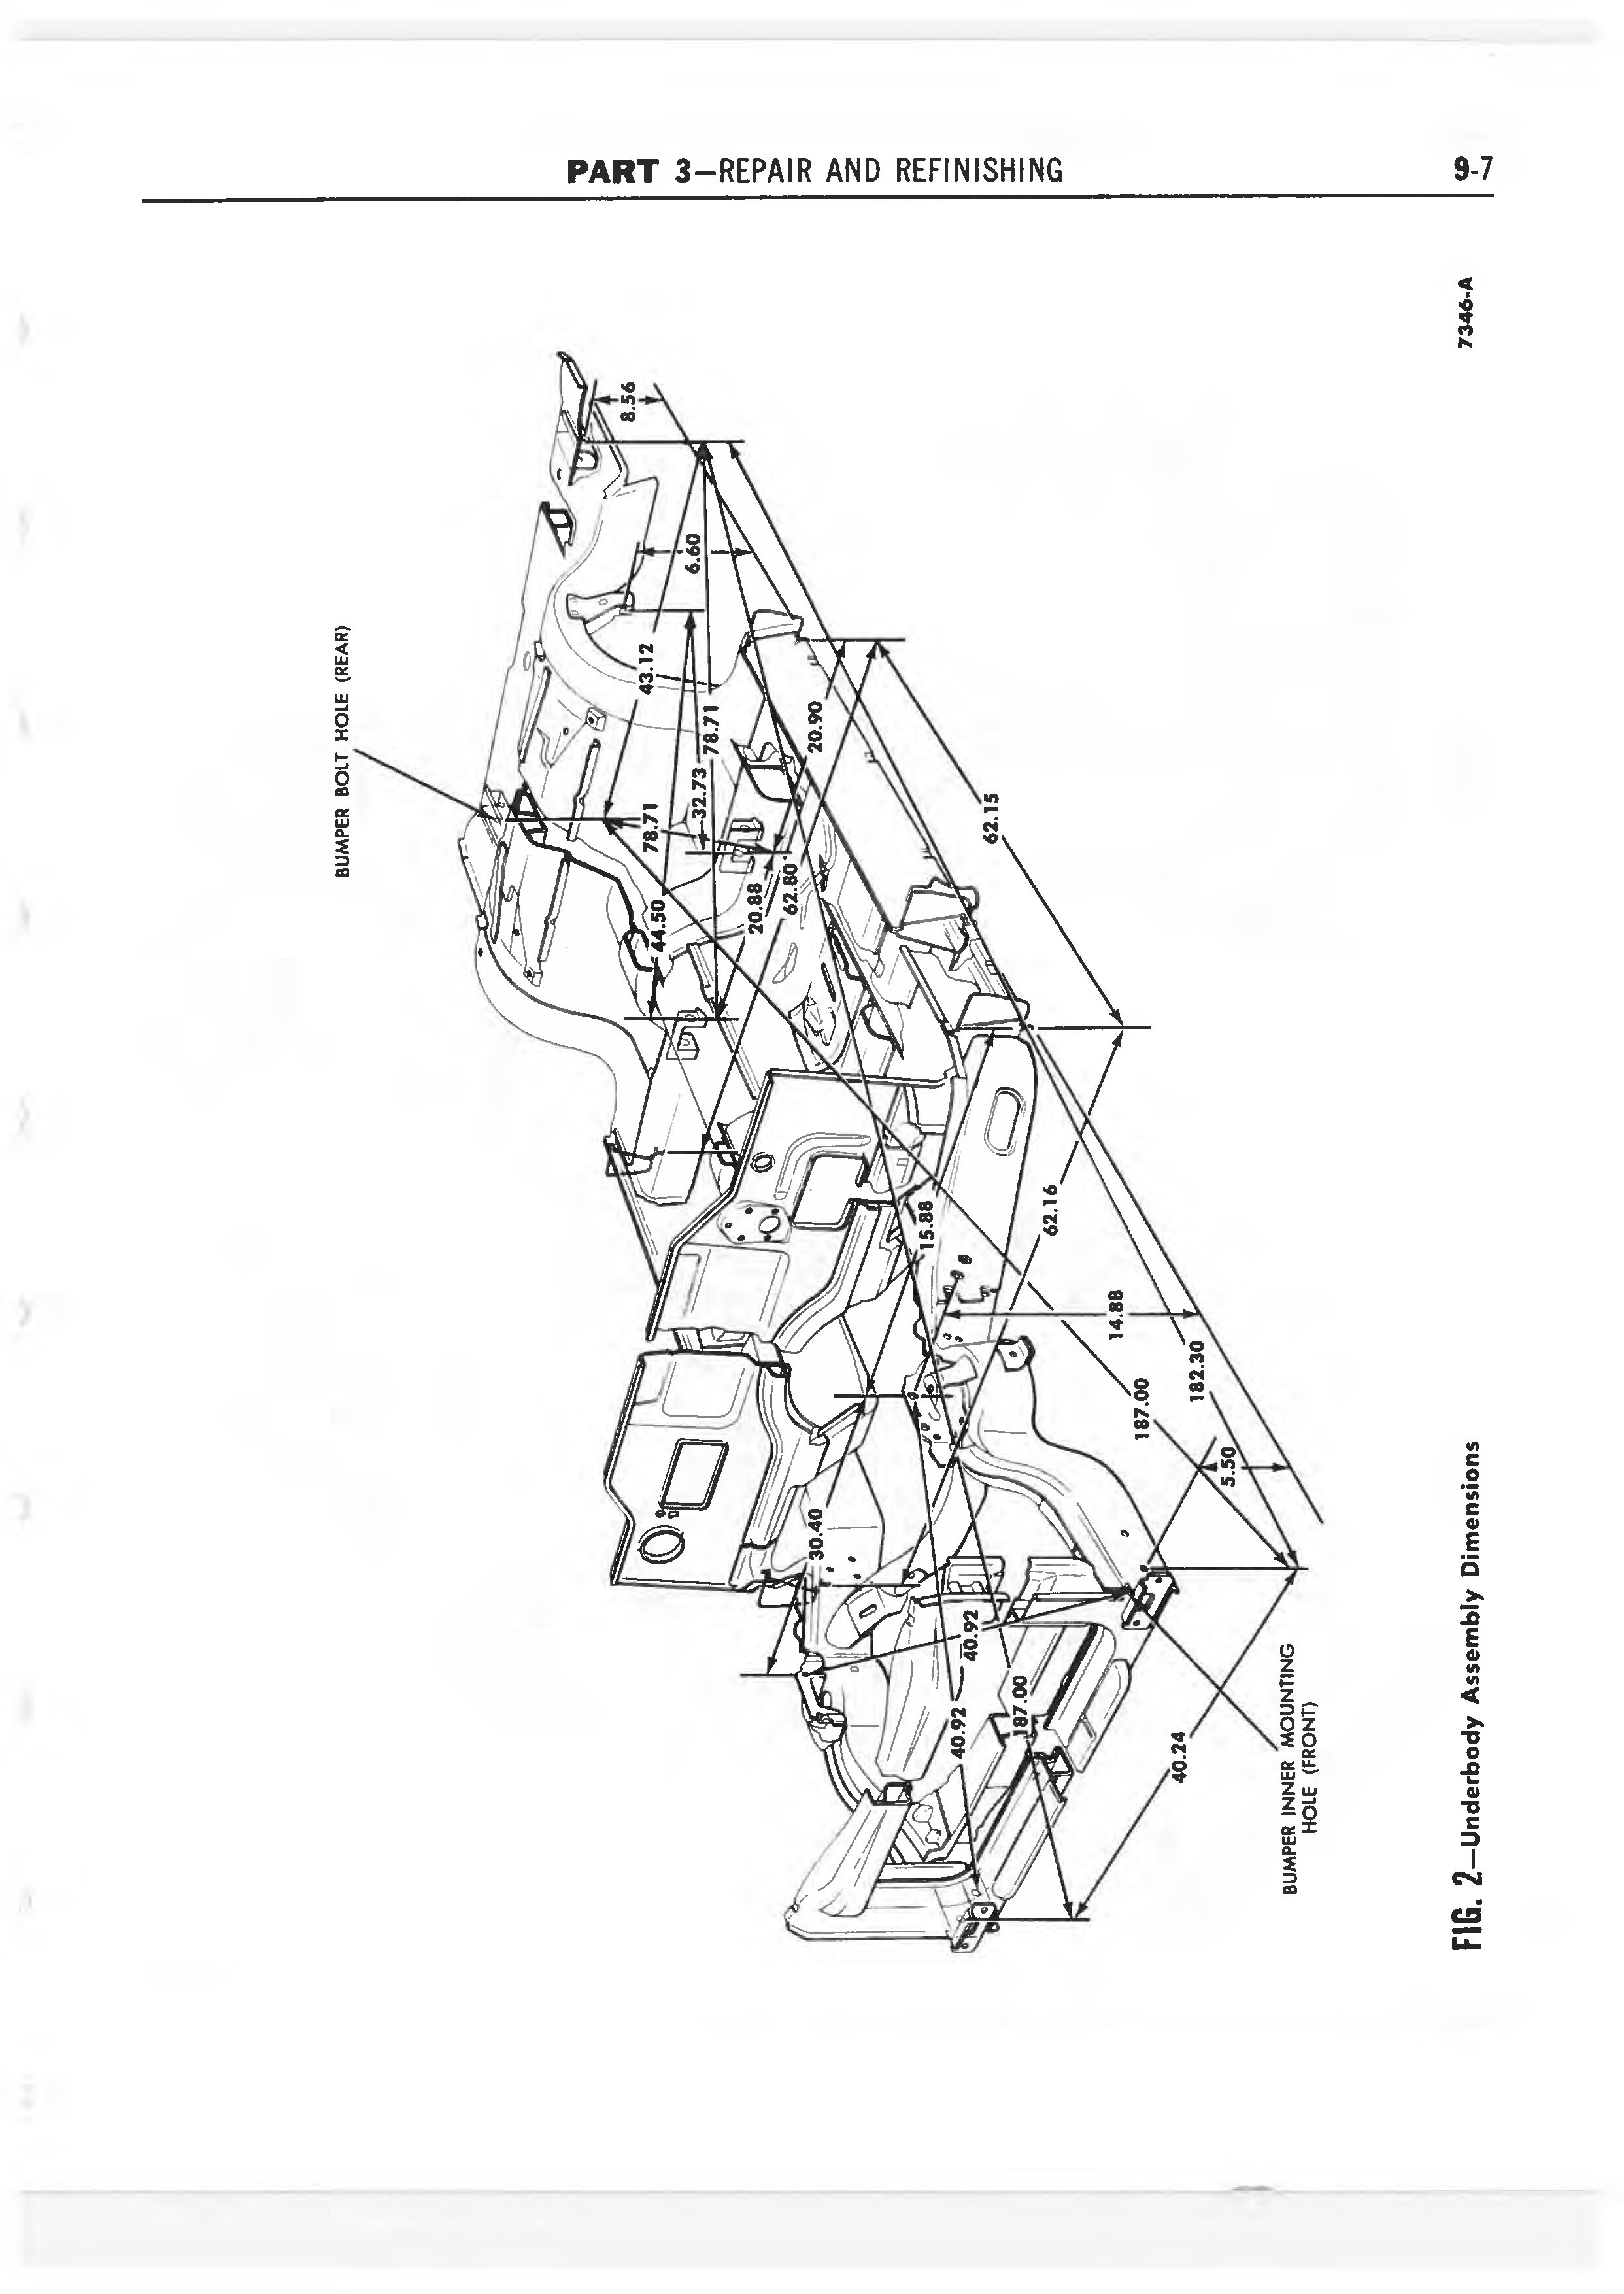 1958 Ford Thunderbird Shop Manual page 300 of 360